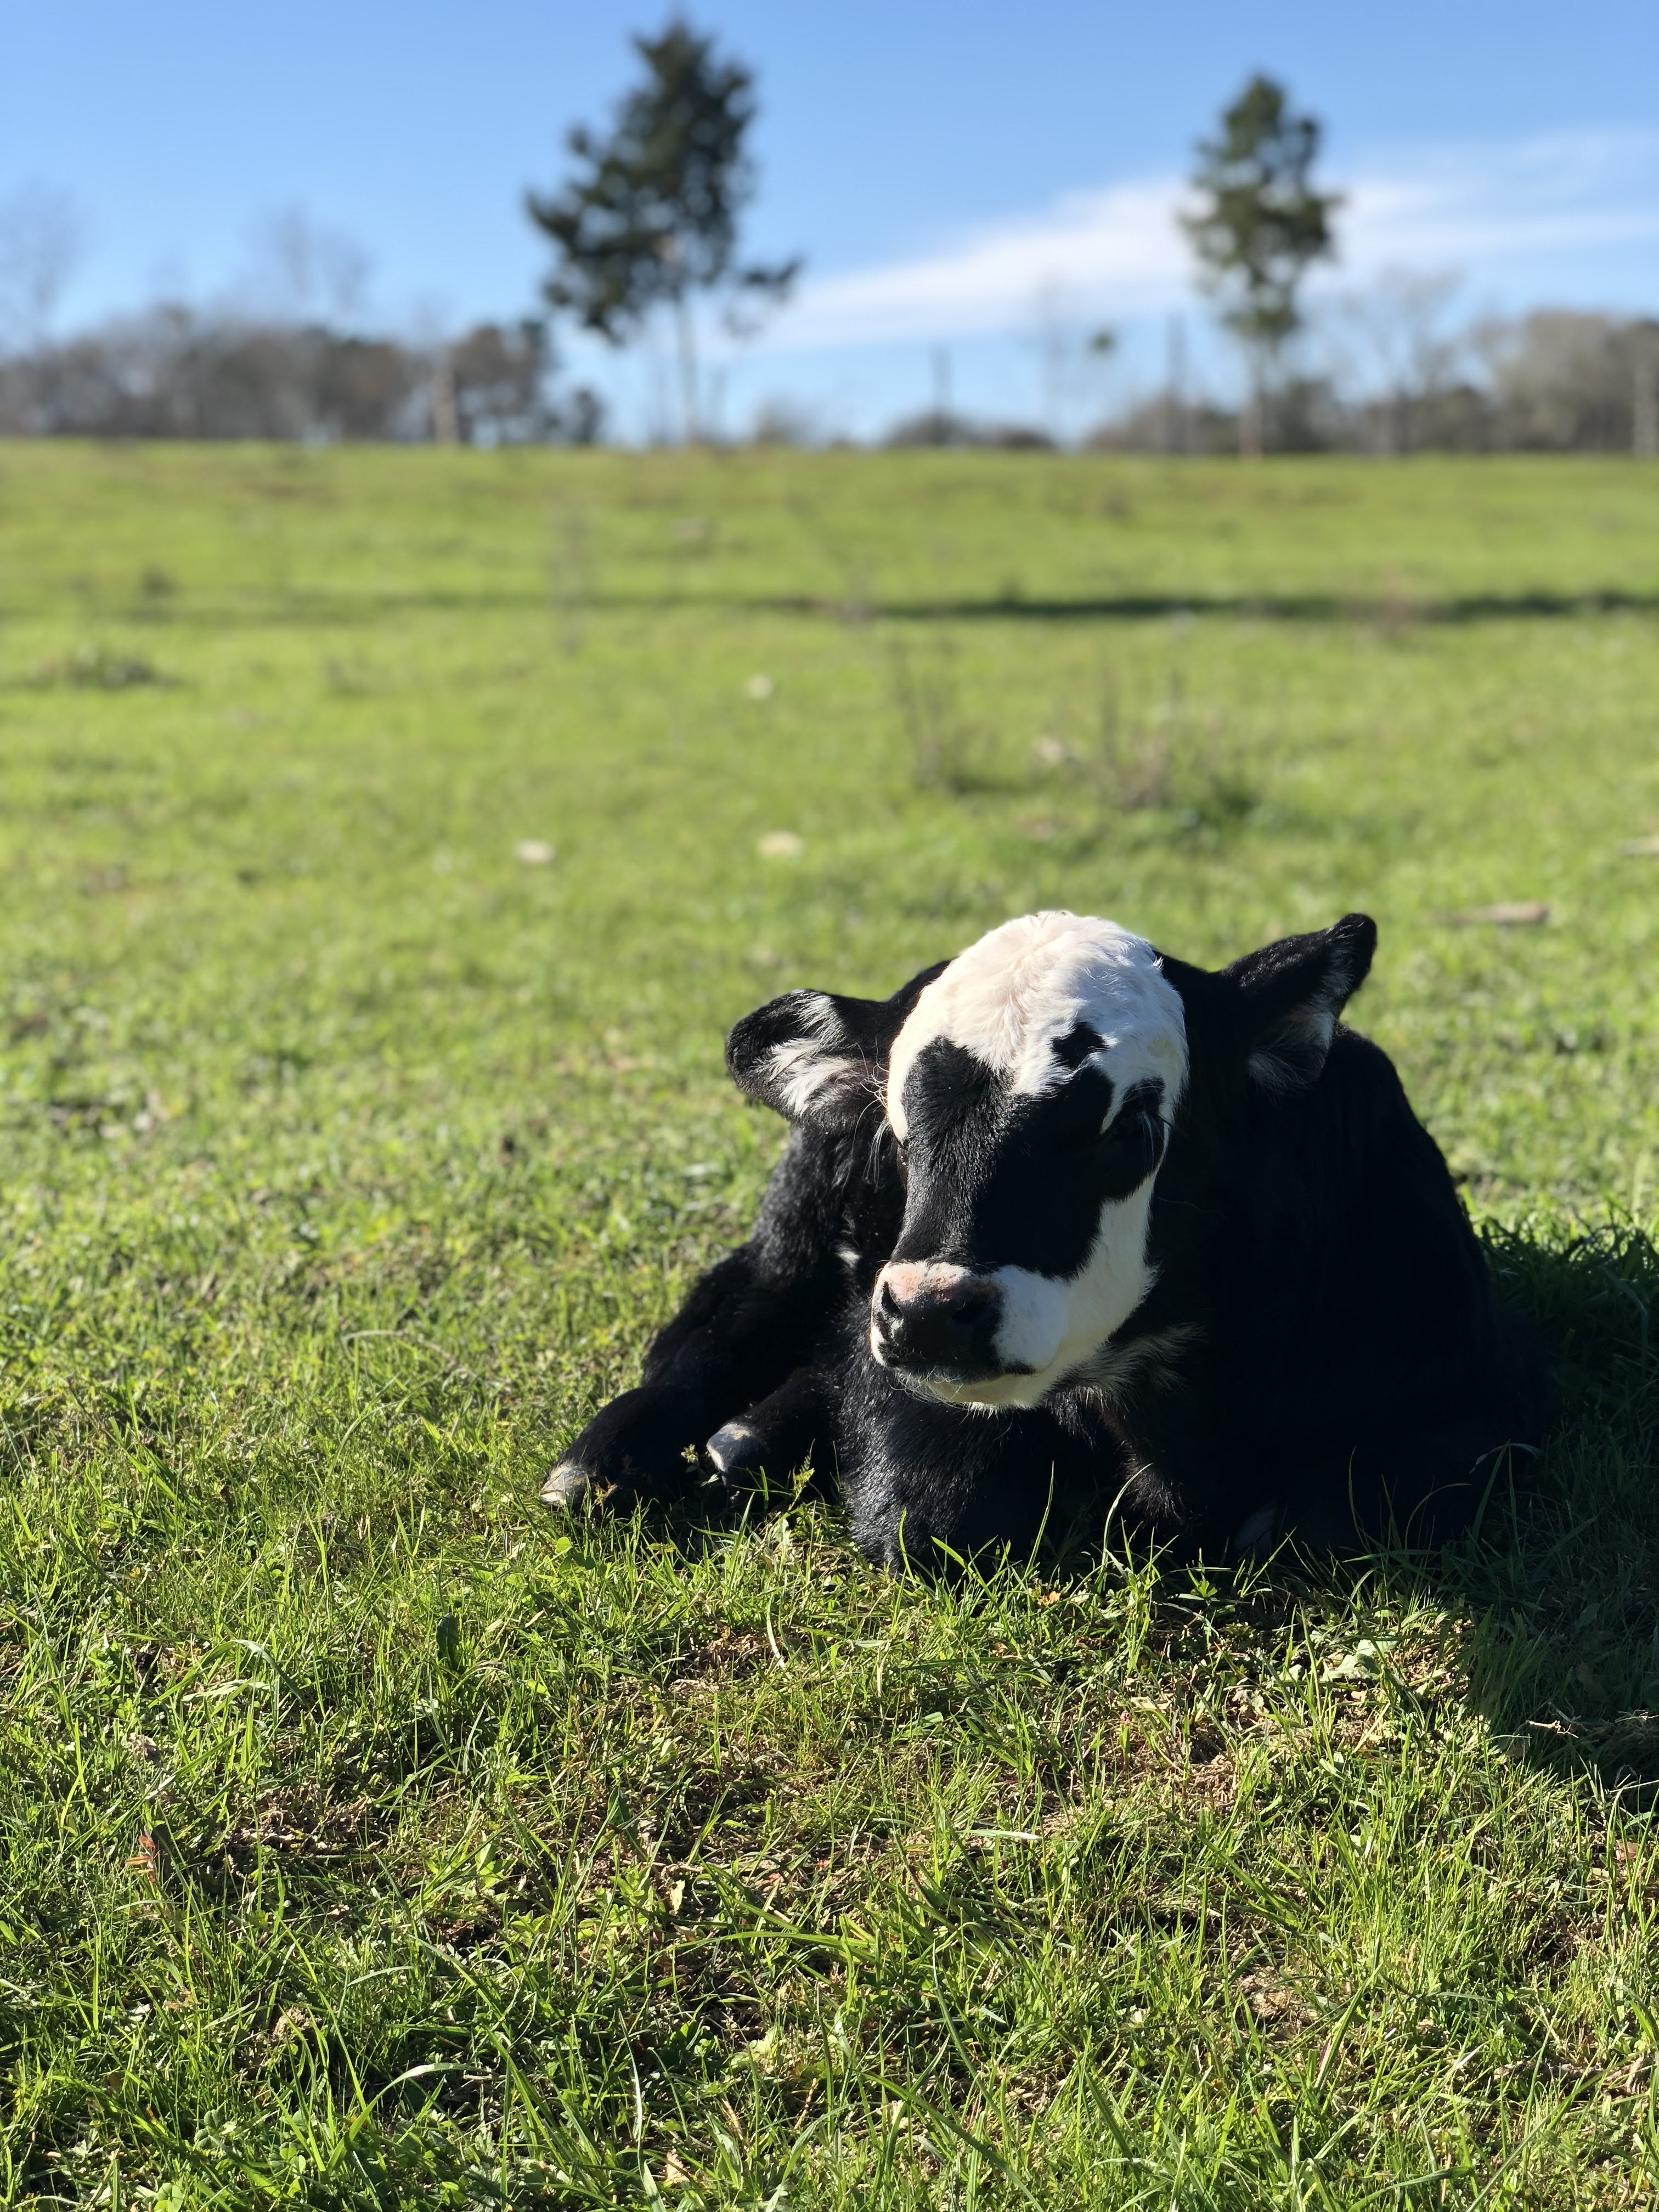 Black And White Calf On Green Grass Field